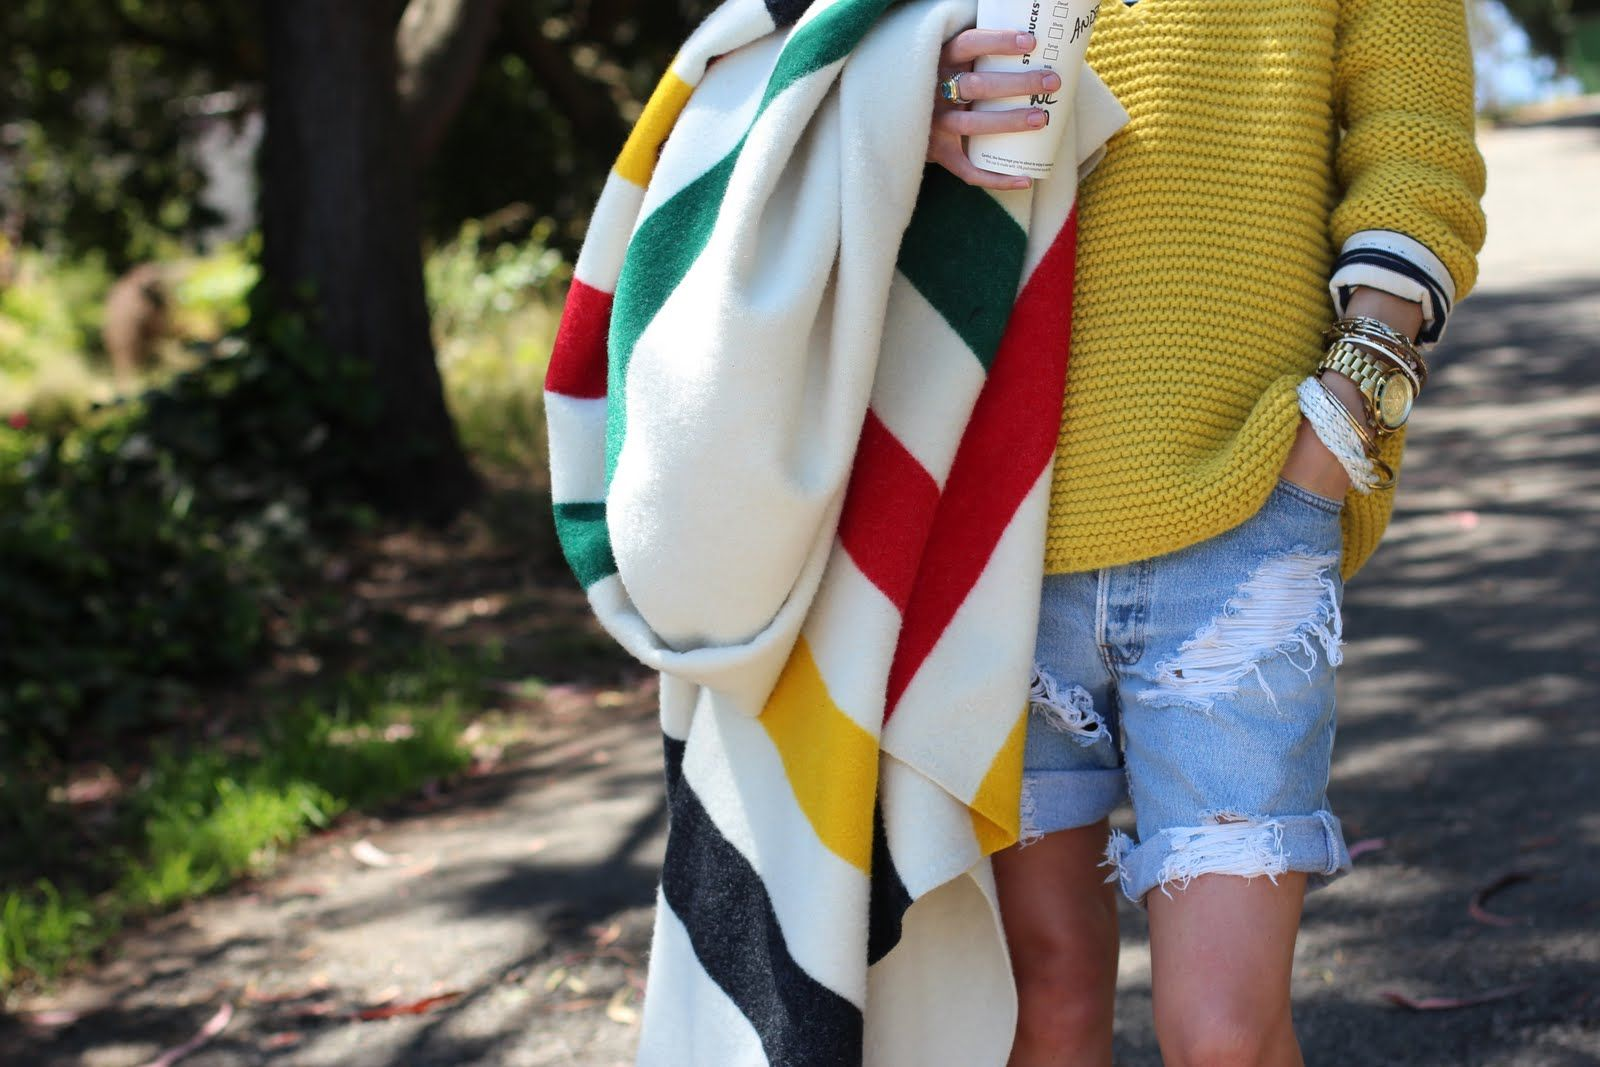 Mustard sweater. DIY destroyed jean shorts. & bracelets  [easy, thrown together look]